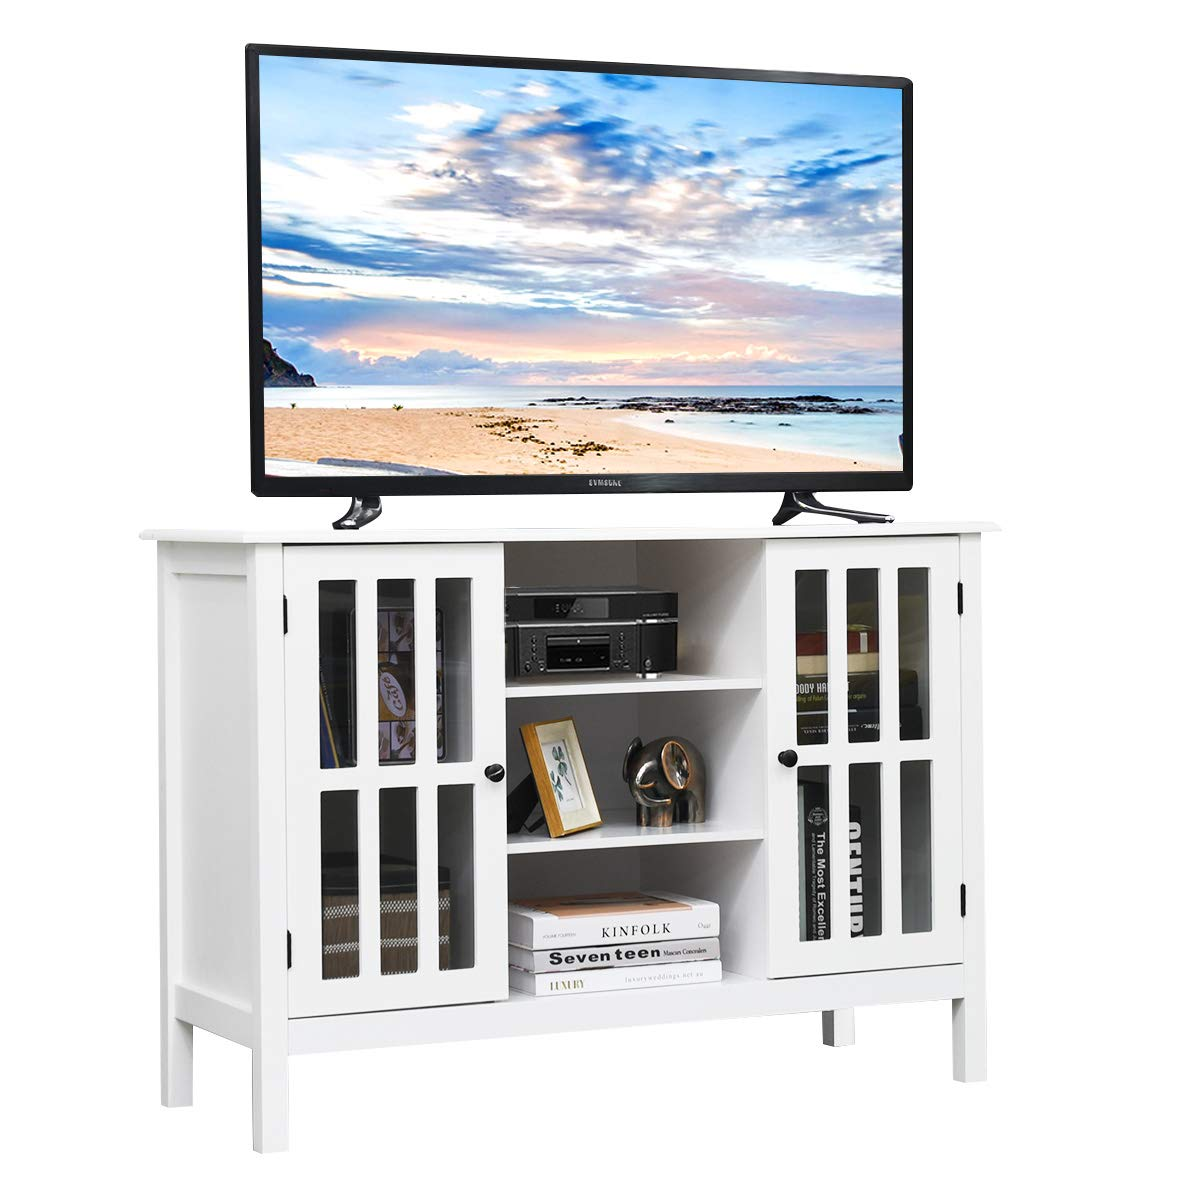 Tangkula TV Stand, Classic Design Wood Storage Console Free Standing Cabinet for TV up to 45'', Media Entertainment Center Home Living Room Furniture, TV Stand Cabinet (White) by Tangkula